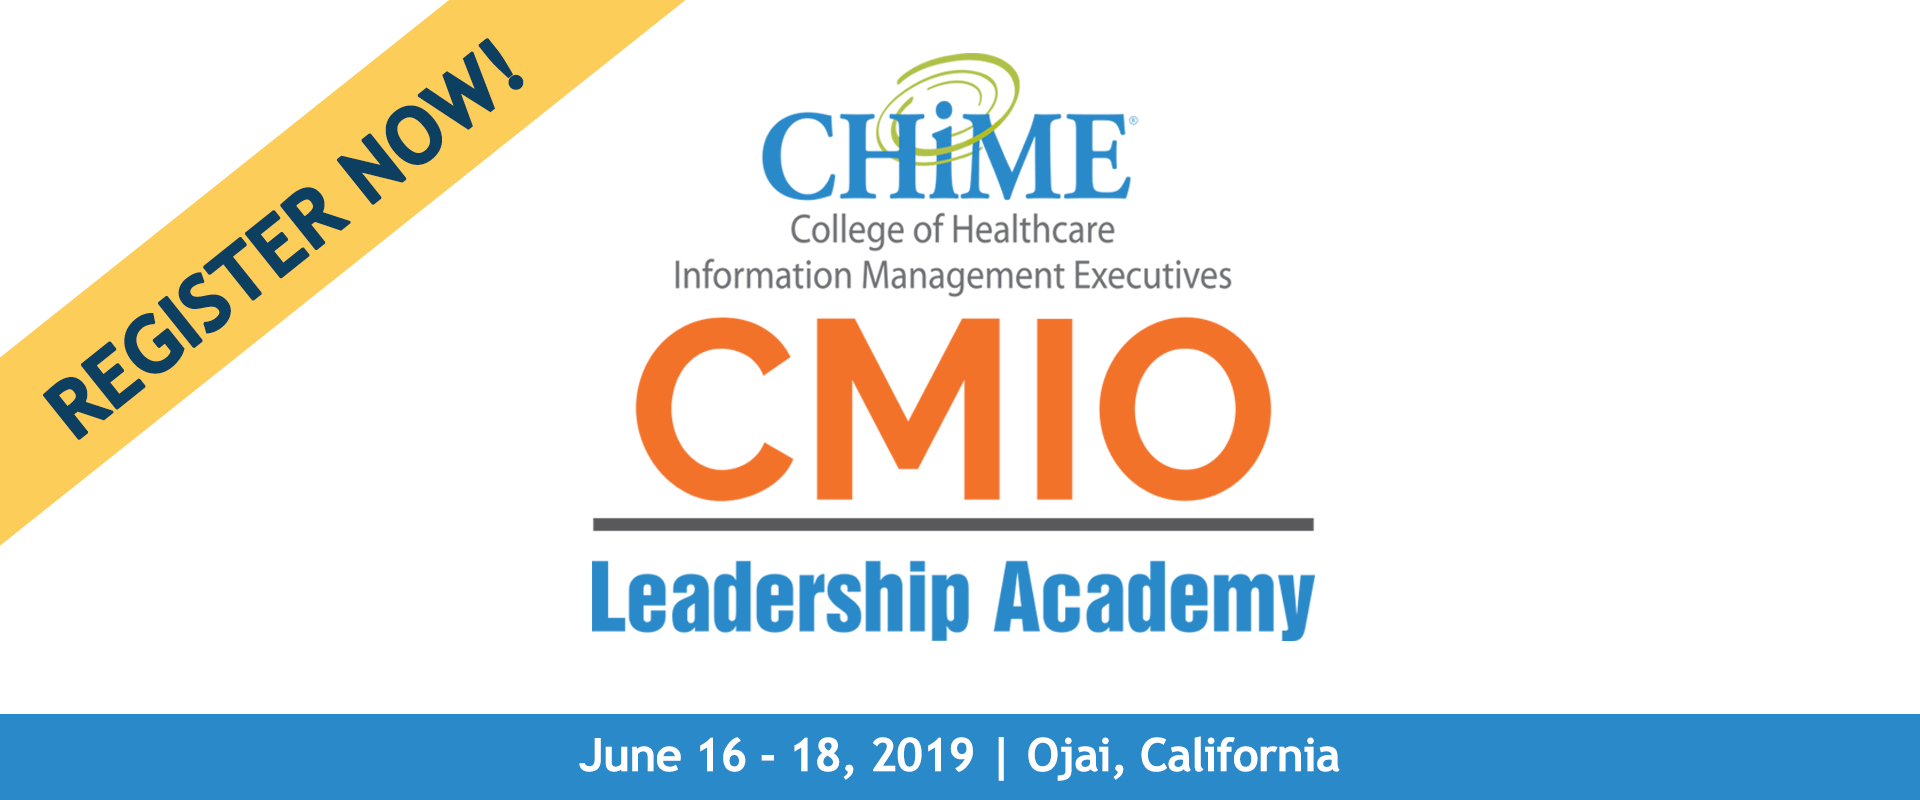 CMIO Leadership Academy - Healthcare IT - CHIME